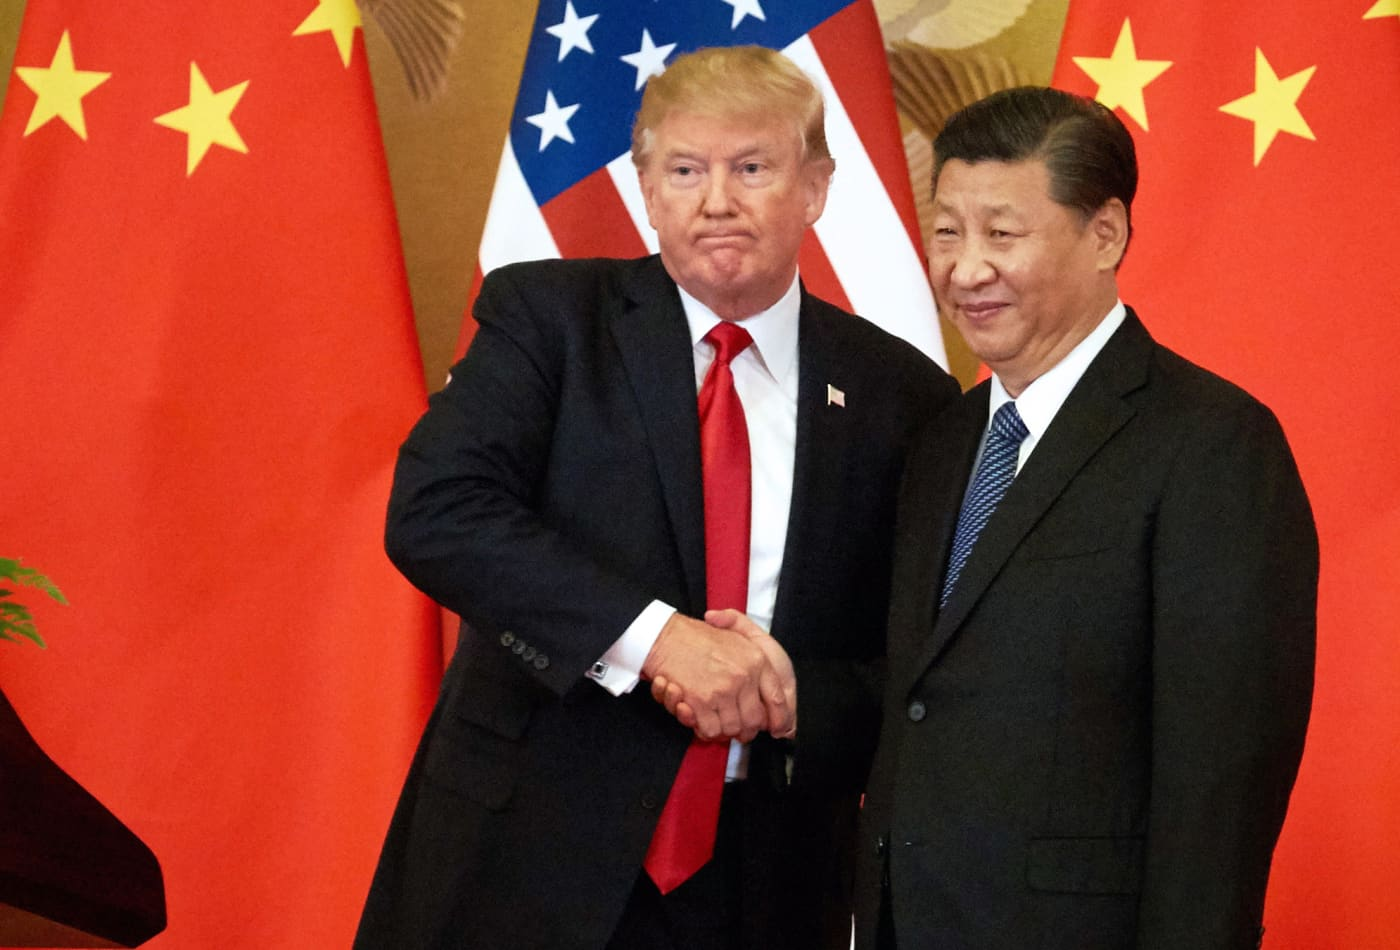 Morgan Stanley says the U.S. 'will not want to break the phase one deal' with China